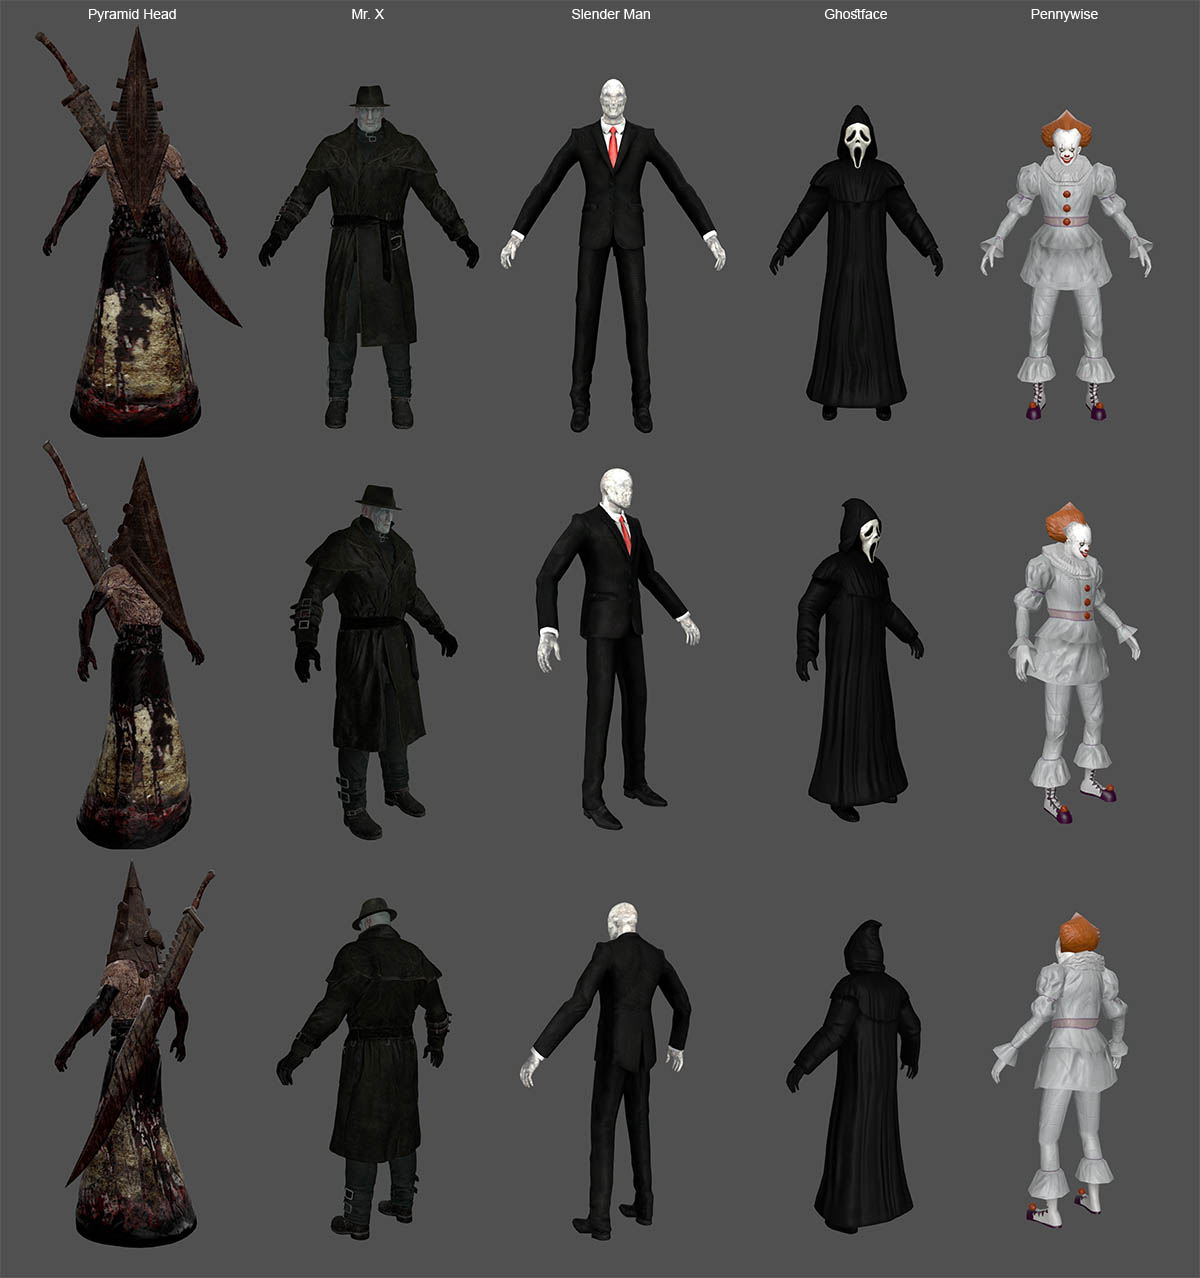 Pyramid, MrX, SlenderMan, GhostFace, PennyWise - Horror Pack